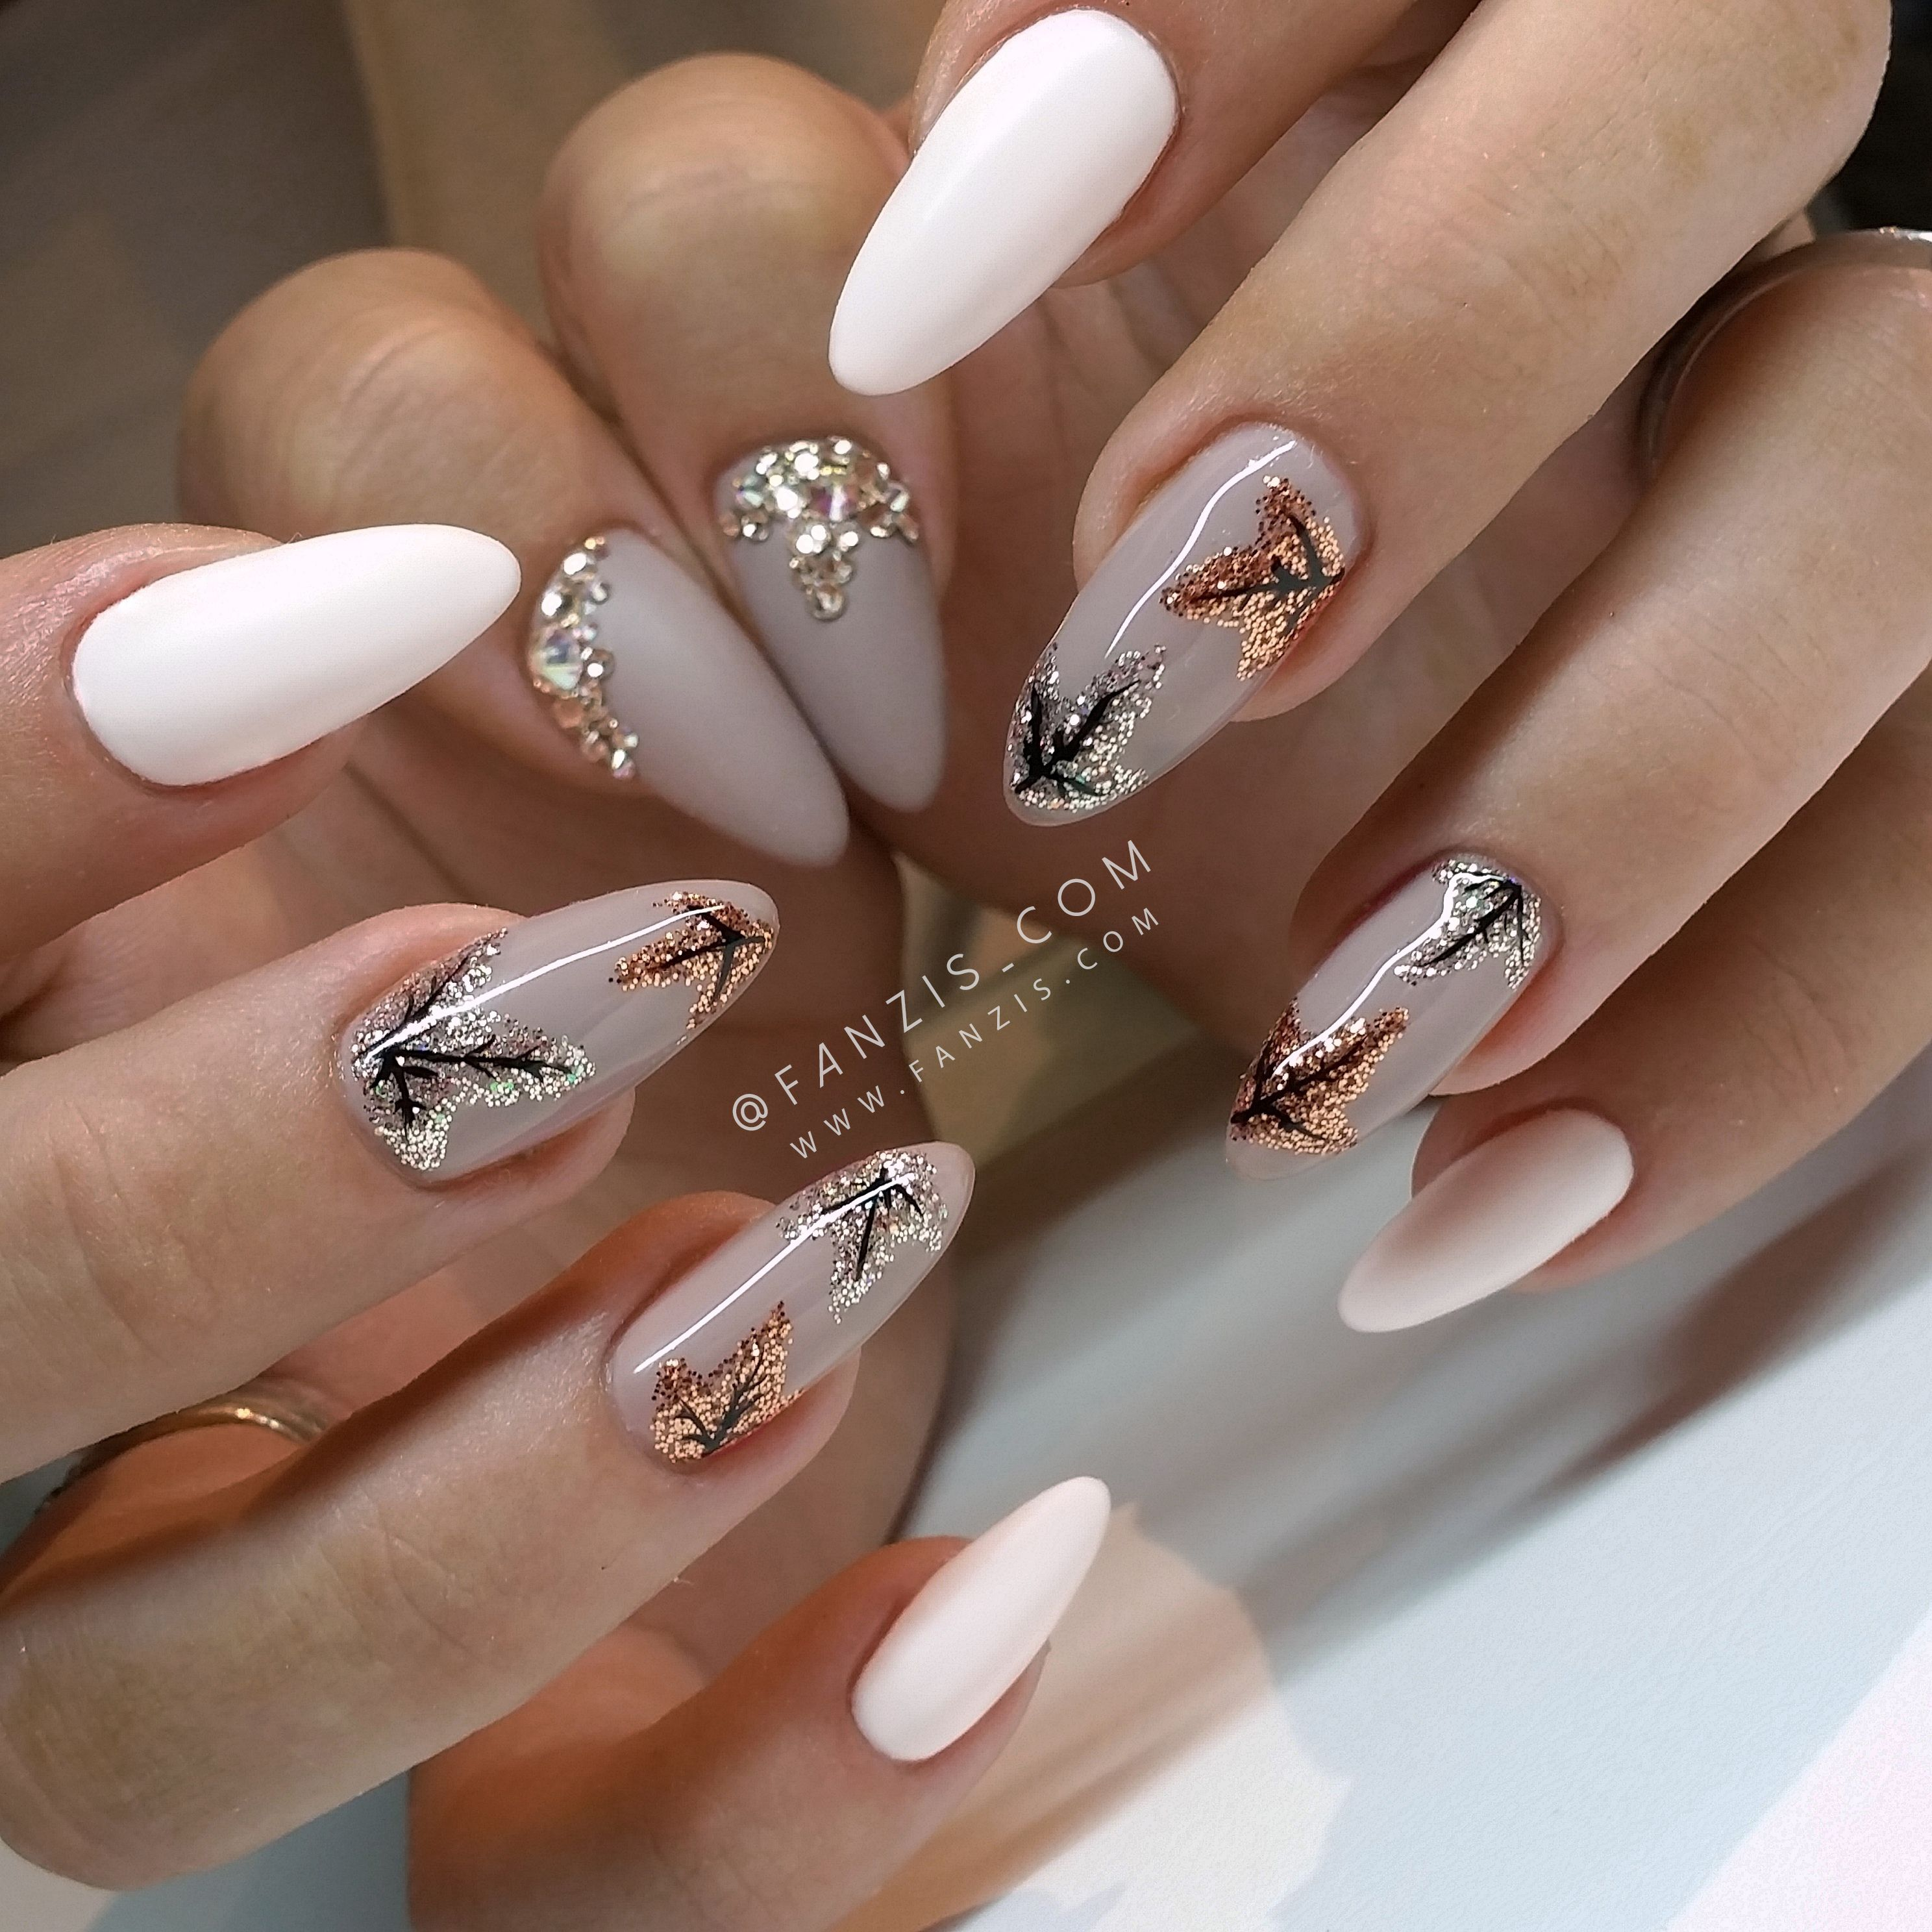 Autumn Fall Nails With Glitter Leafs Nail Designs Autumn Nails Fall Nail Designs